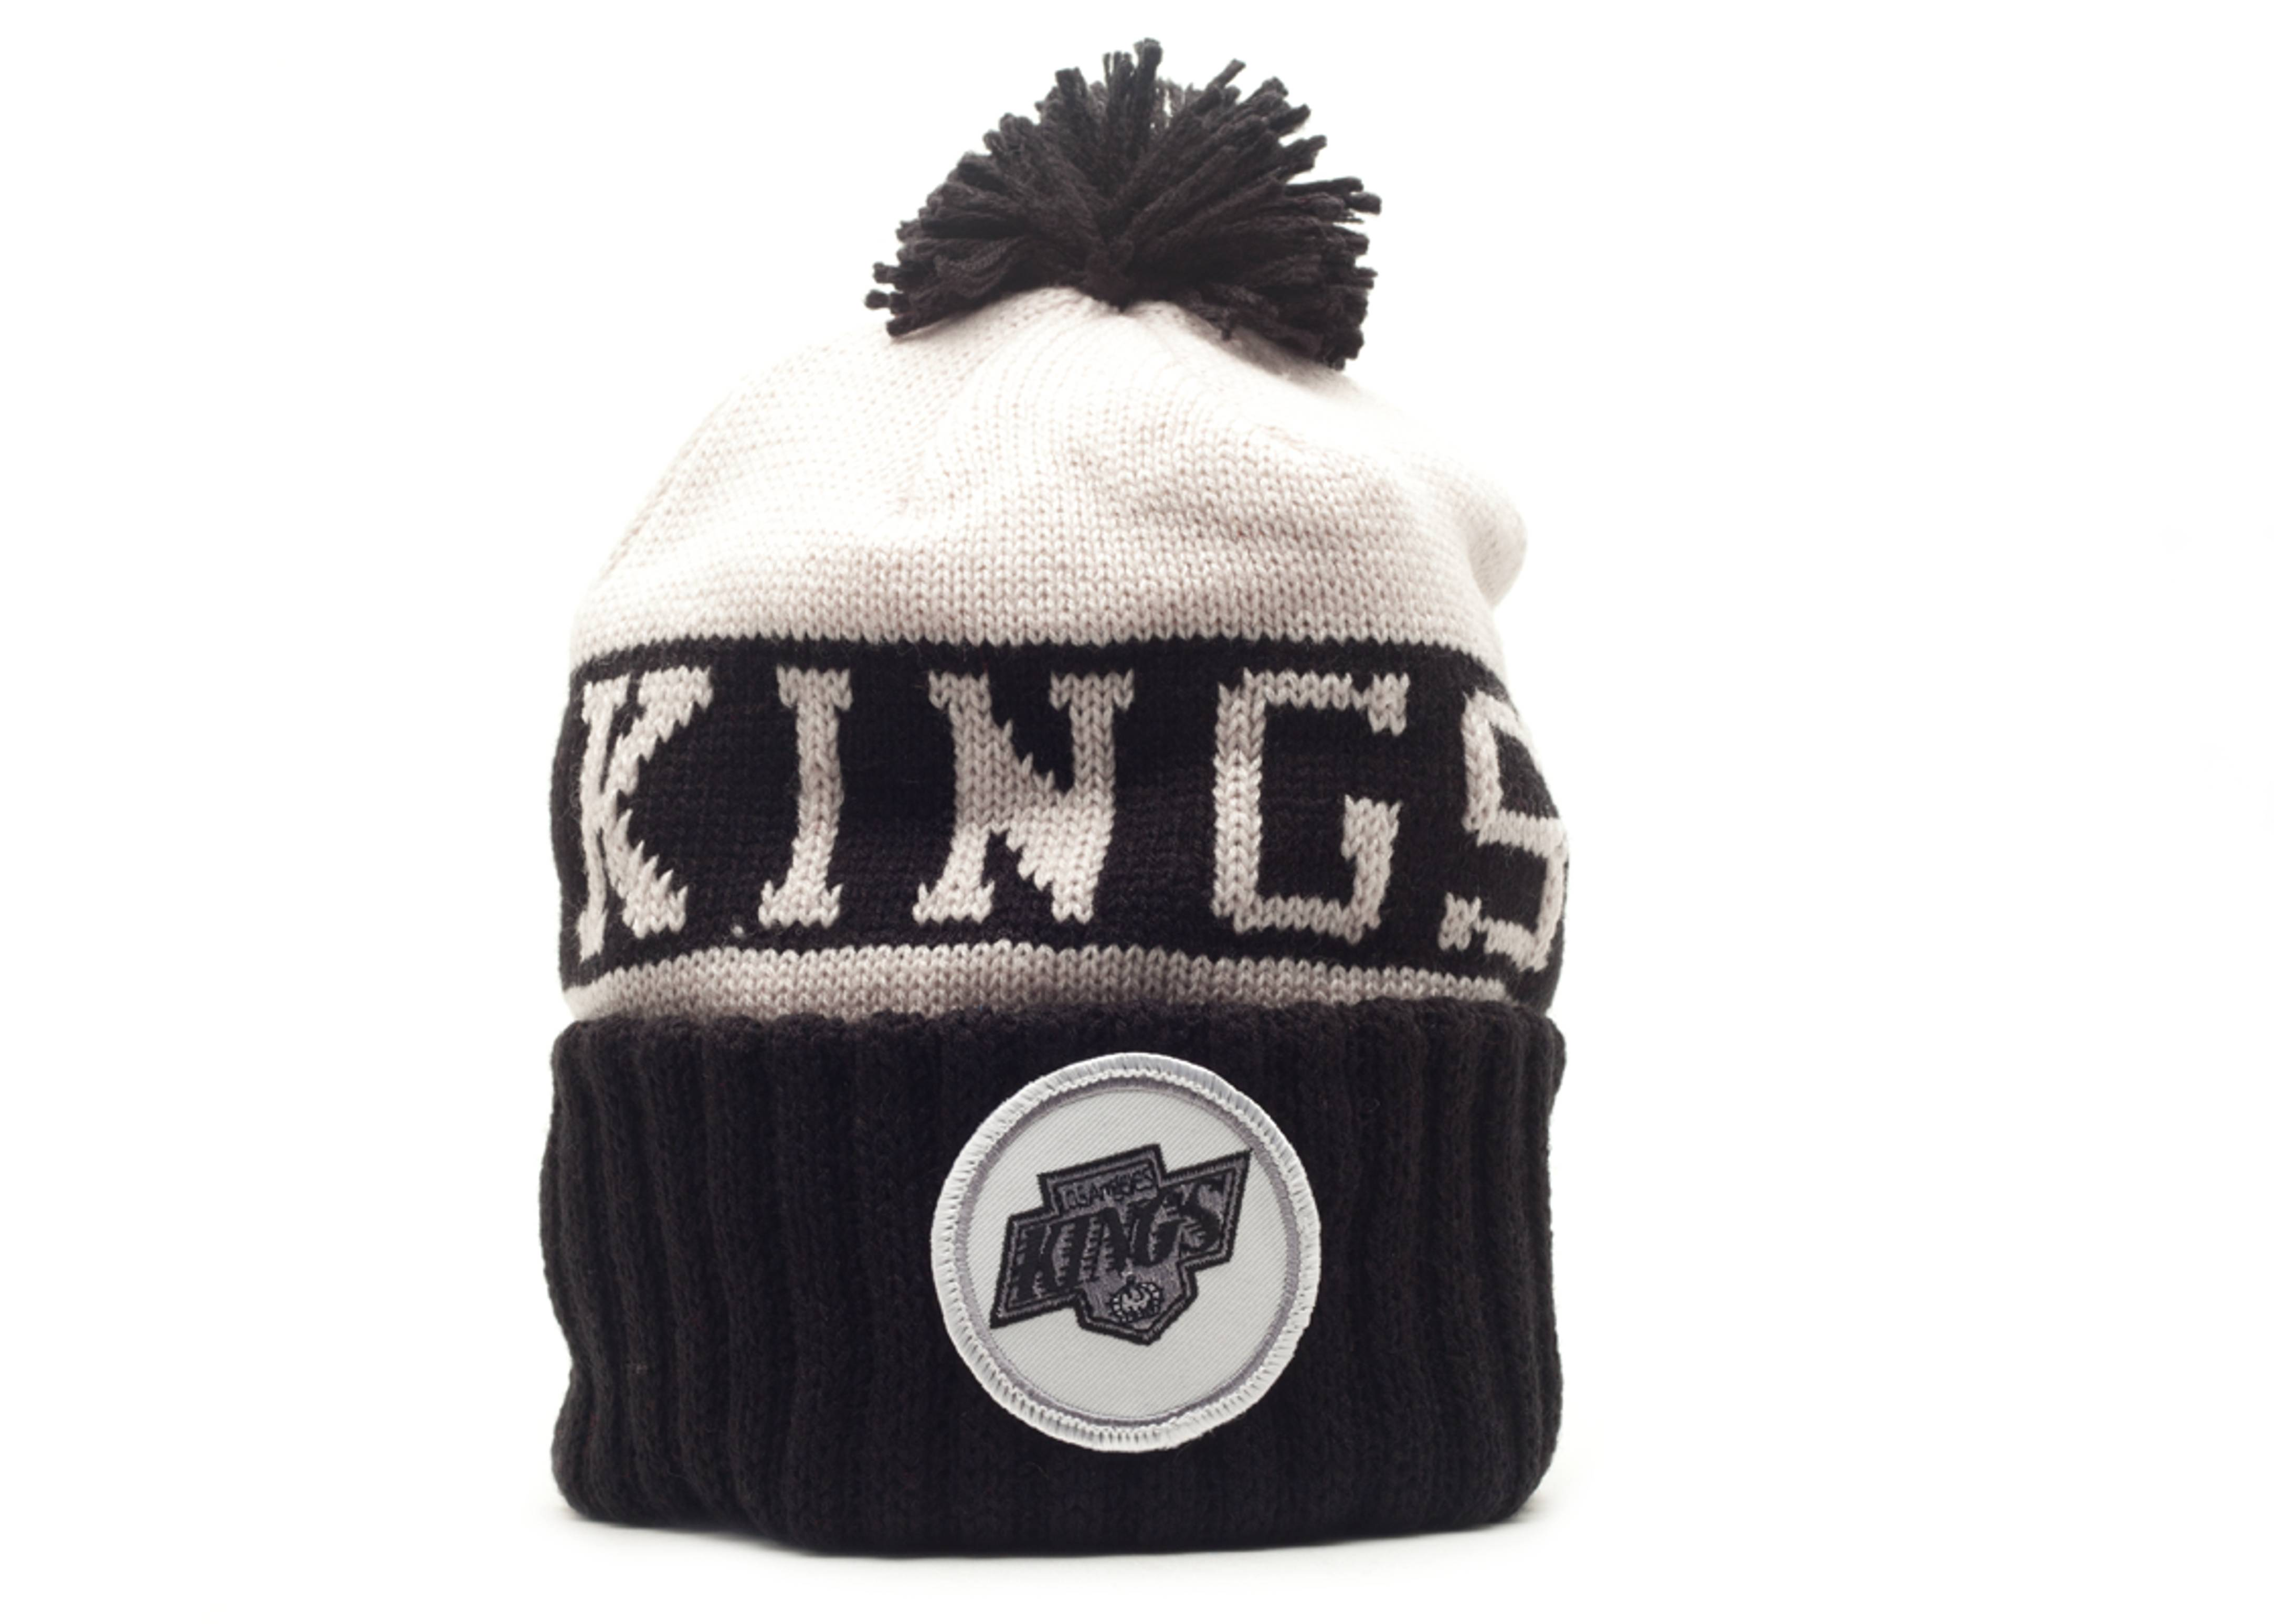 los angeles kings beanie